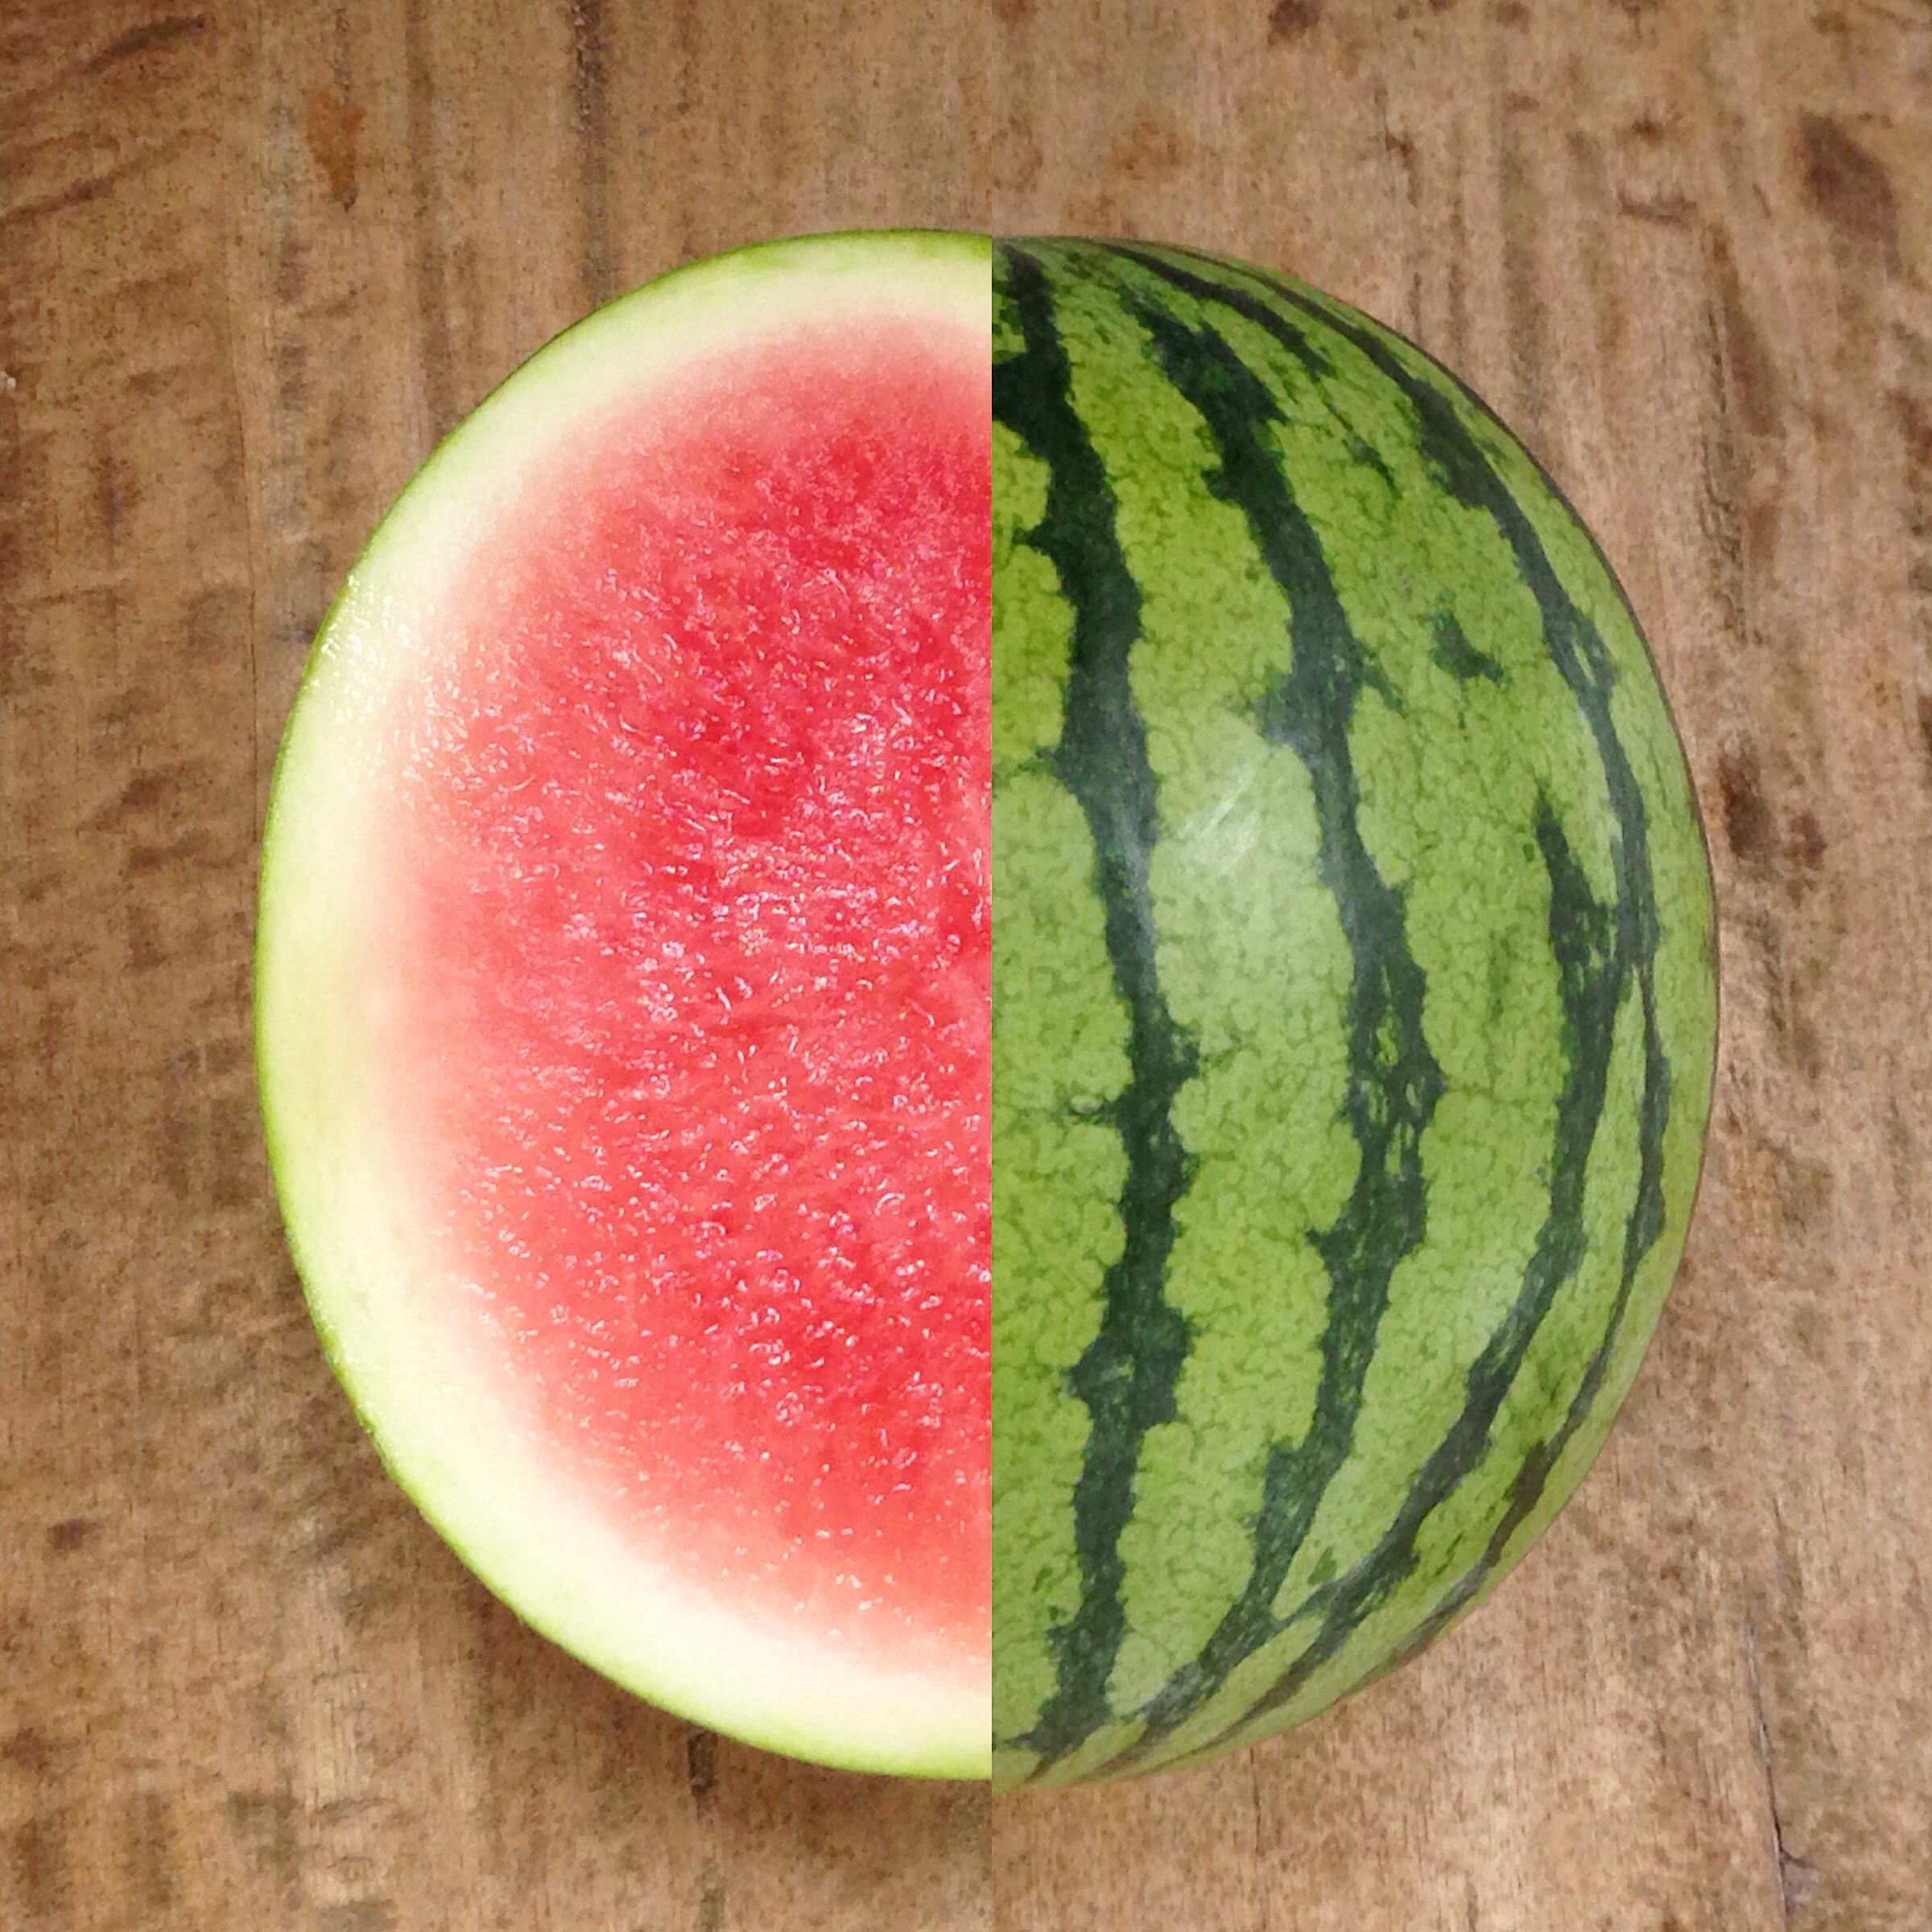 How Does Seedless Fruit Reproduce